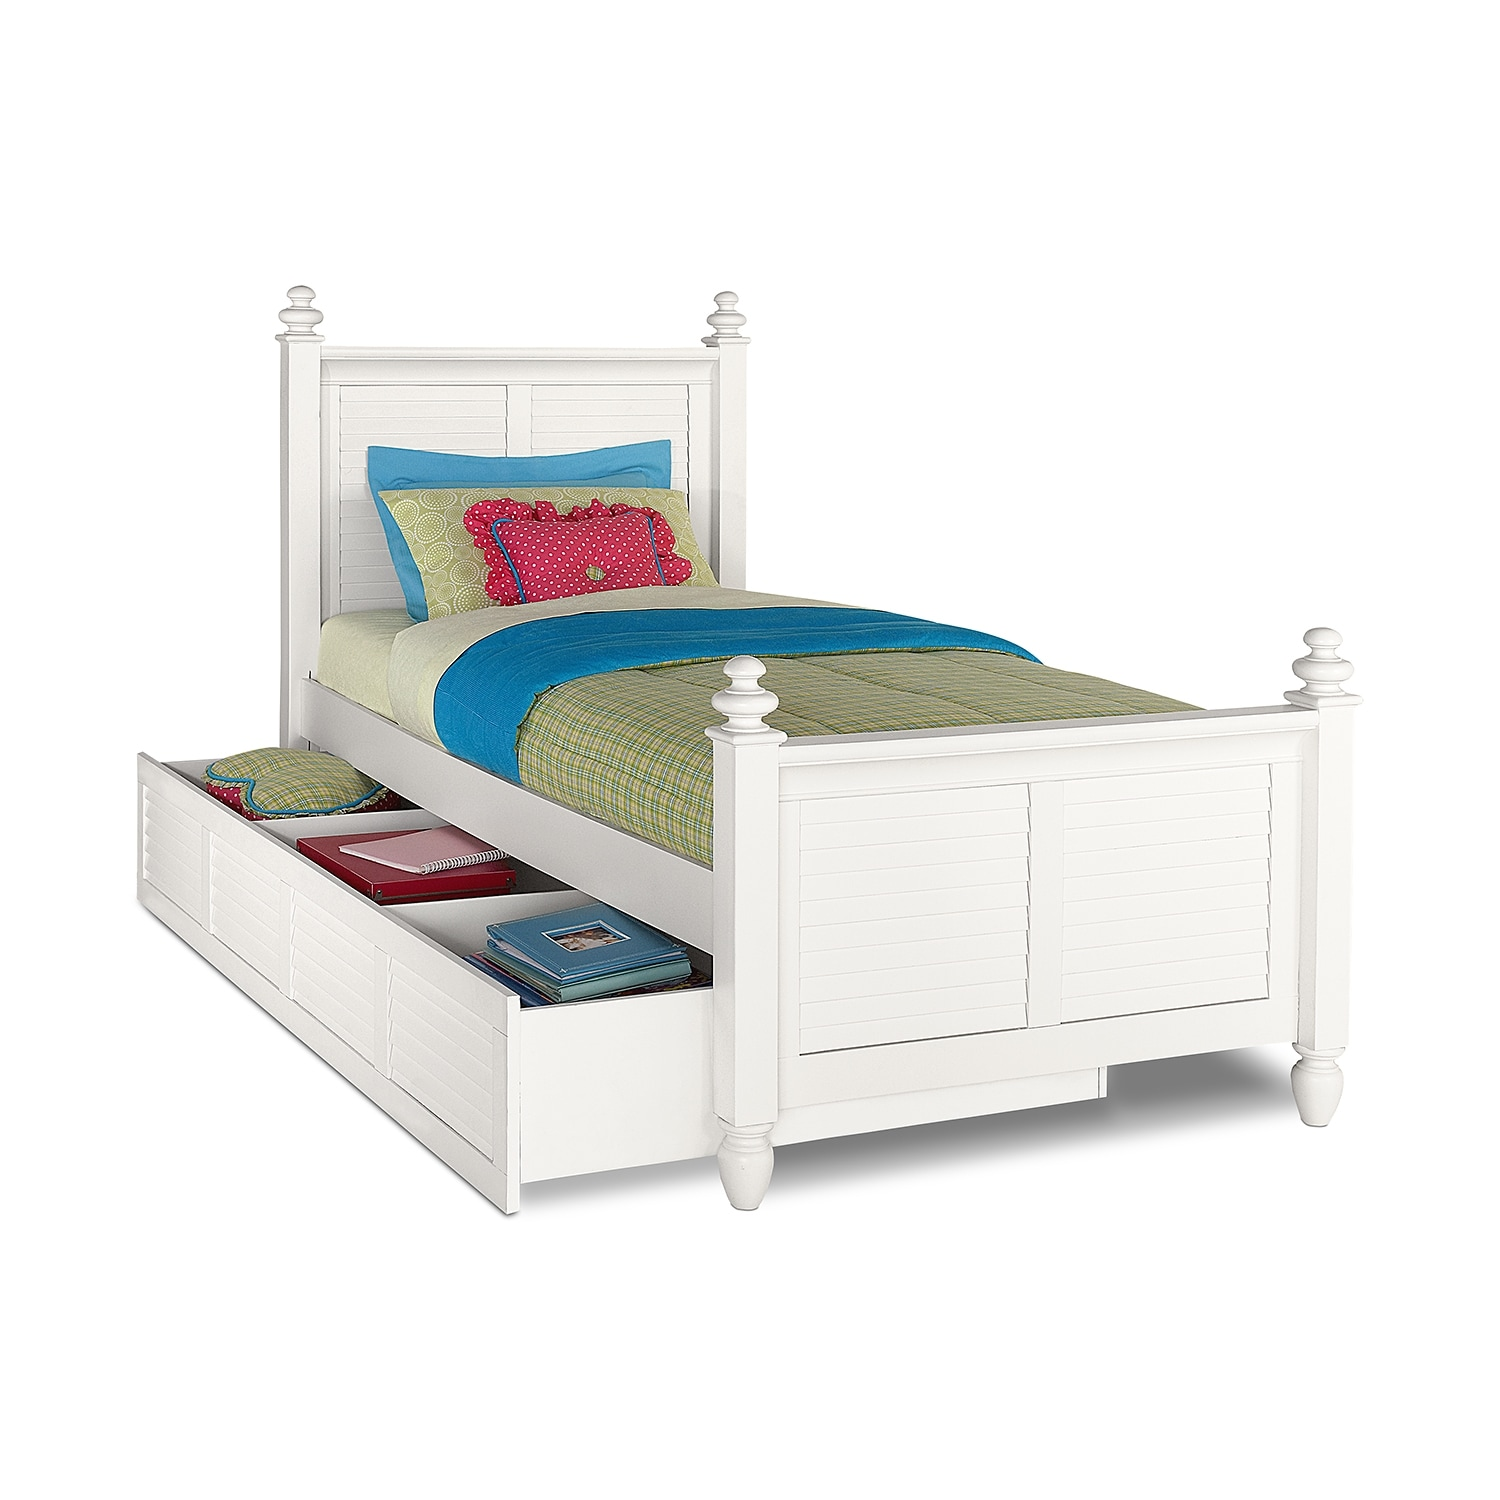 Seaside Full Bed with Trundle - White | Value City Furniture and ...